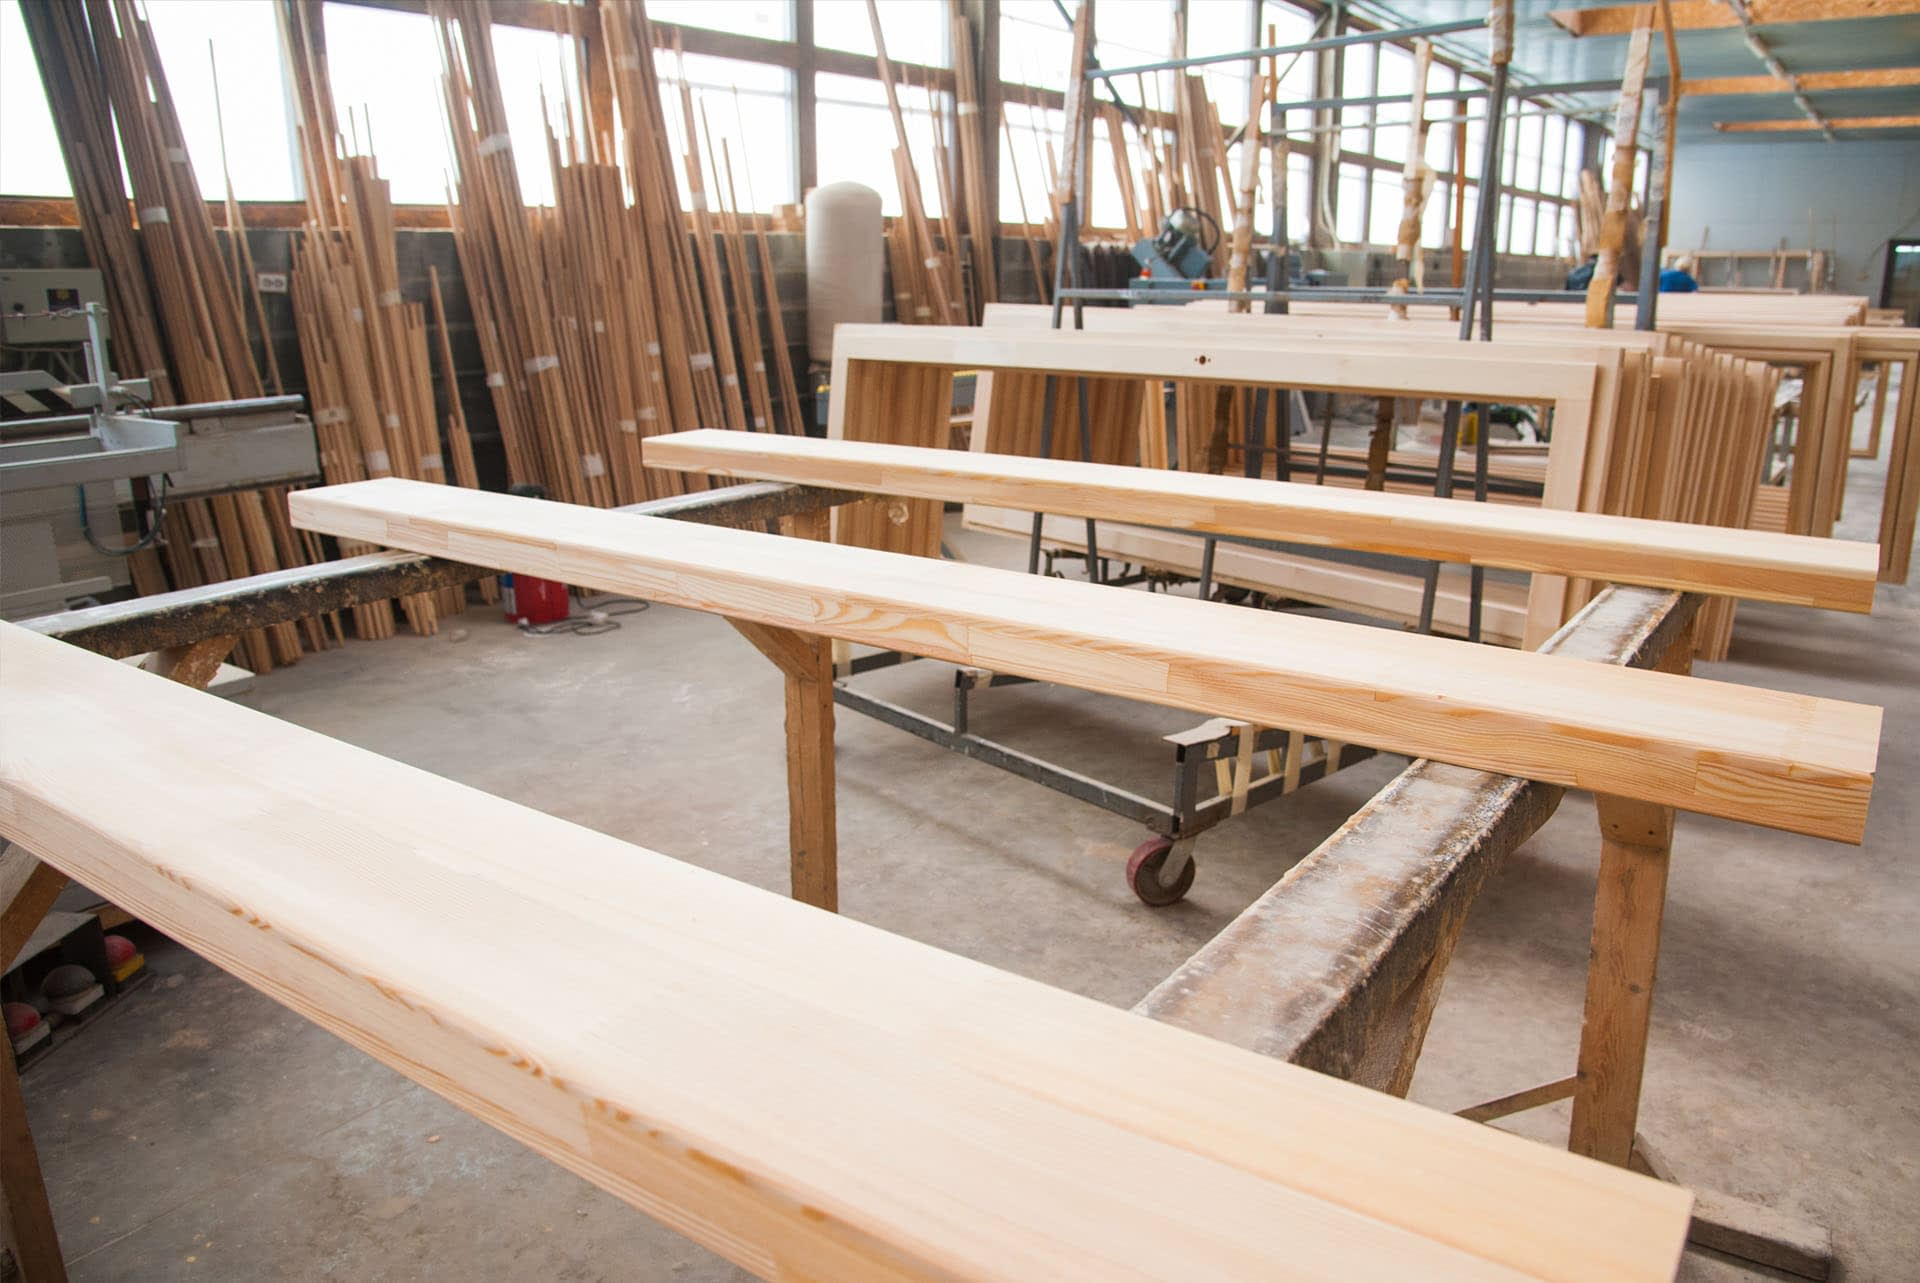 joinery-par-timber-sawn-planed-cut-to-size-workshop-planed-all-round